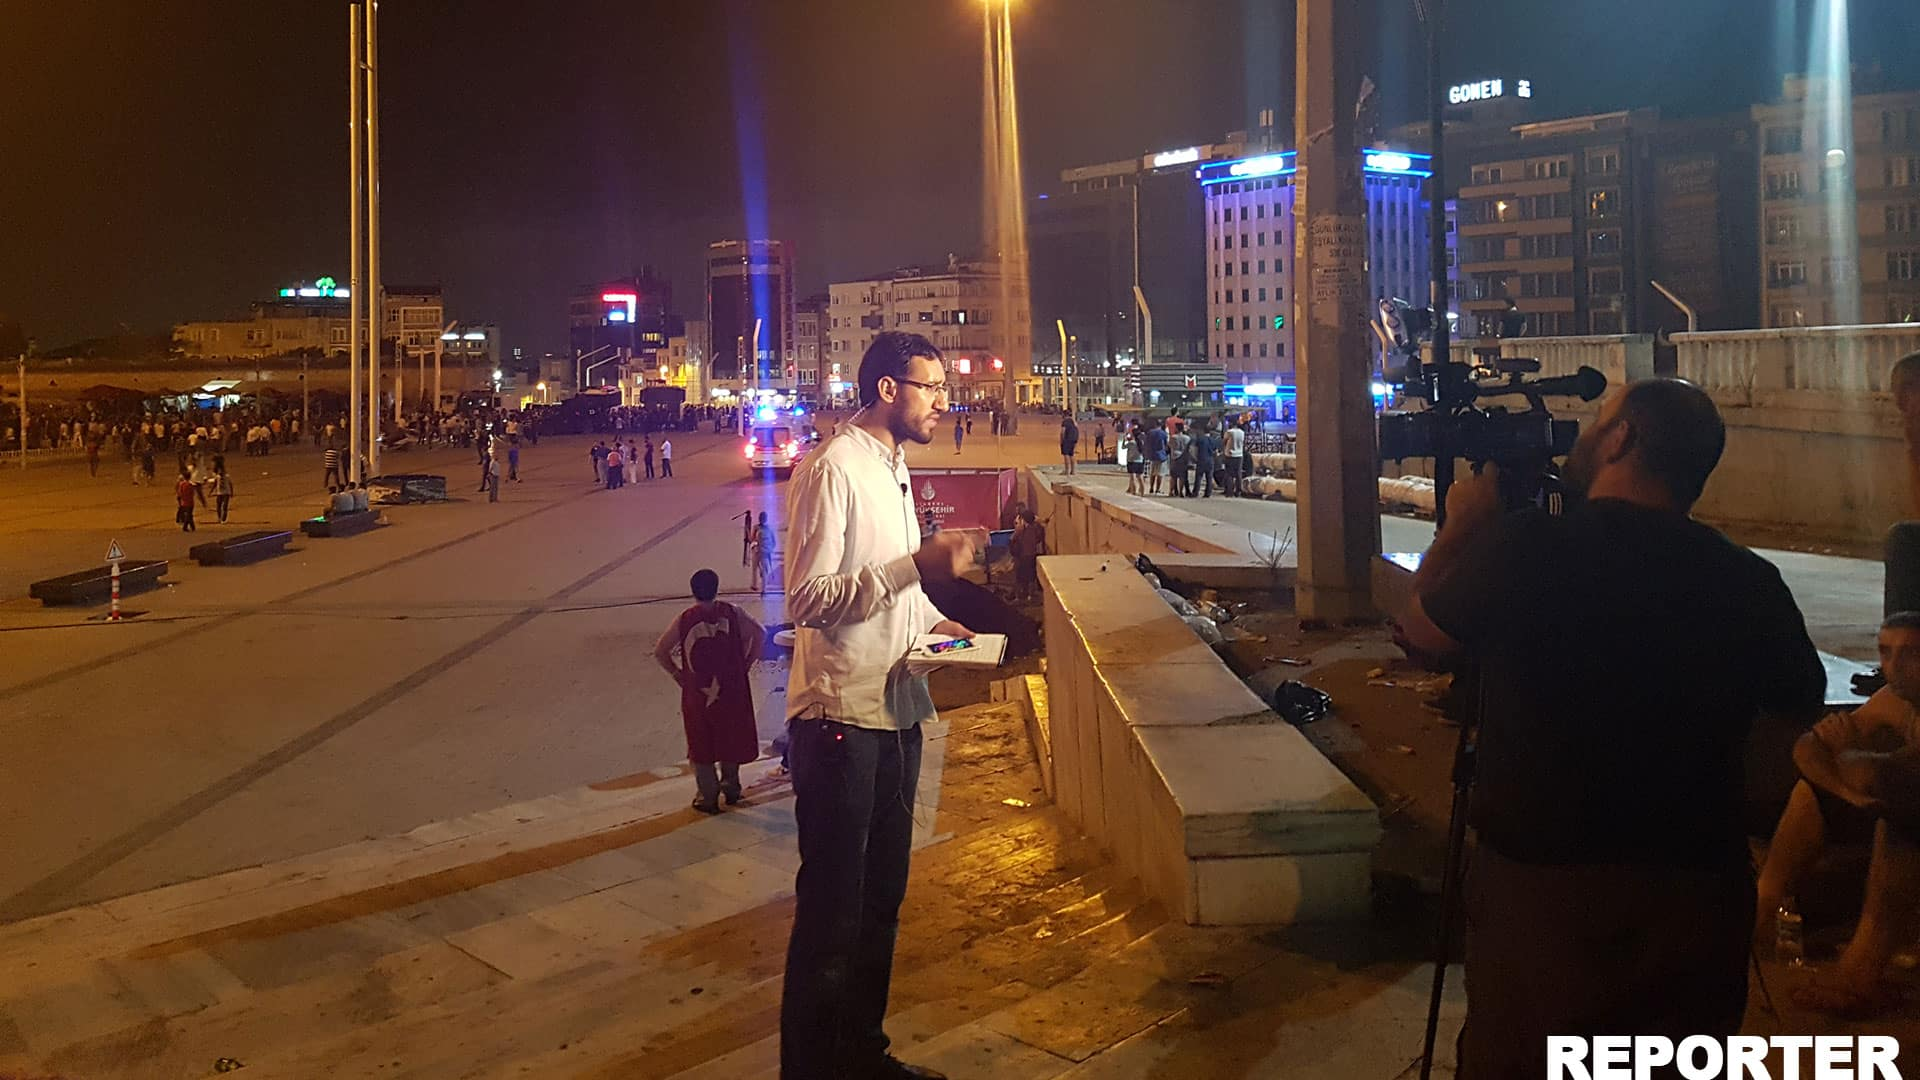 Reporter at Taksim Square